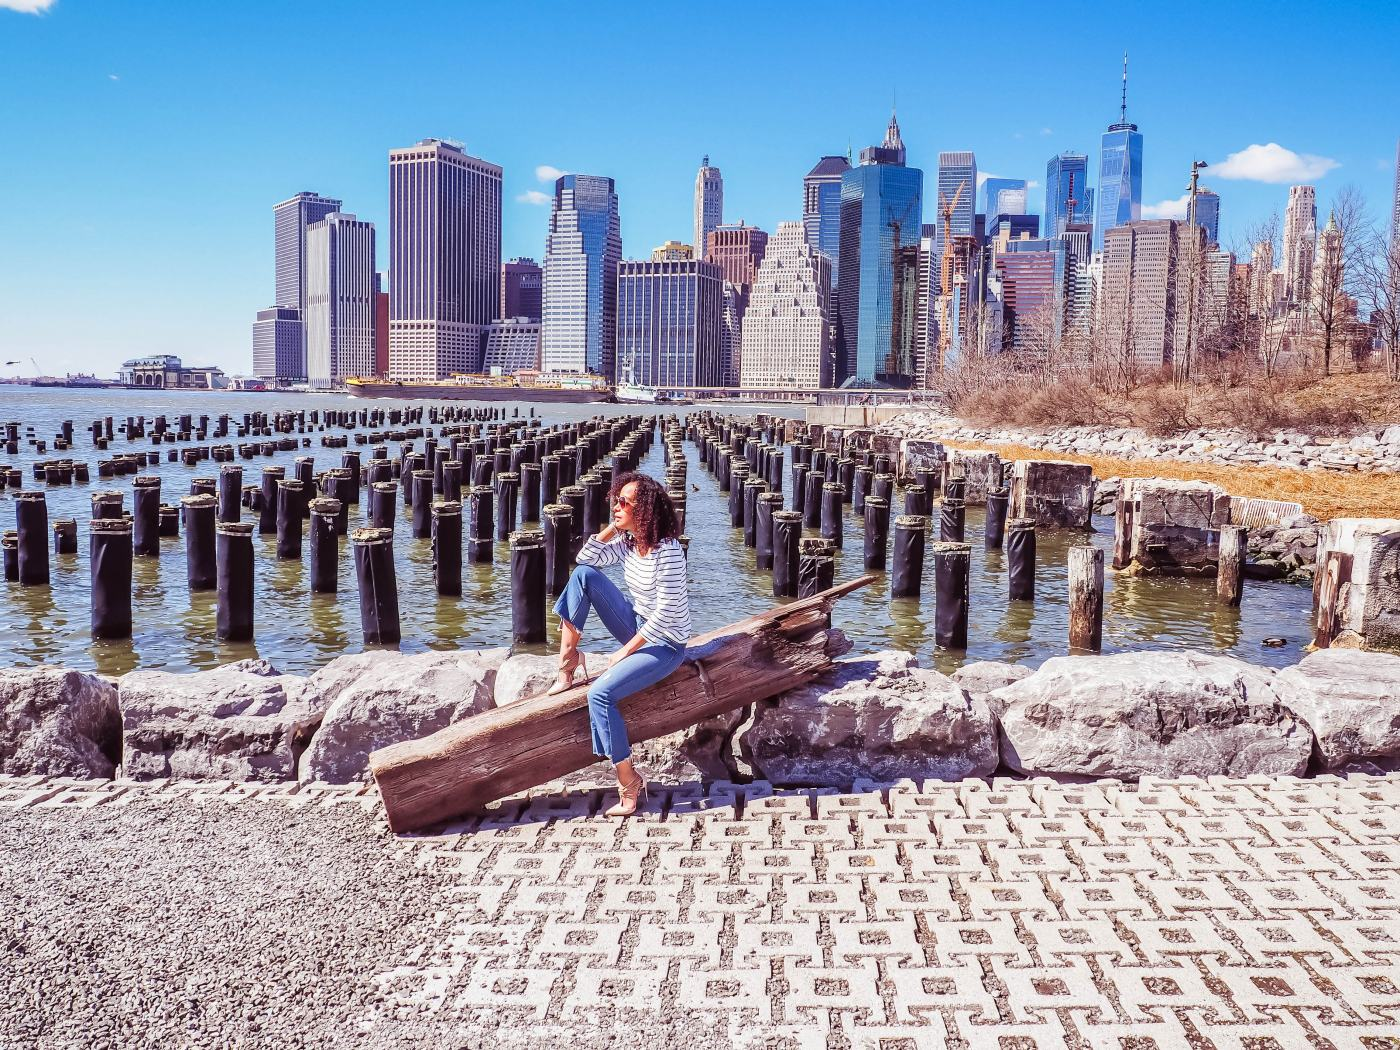 The Best NYC Instagram Spots In New York City (You Never Thought Of)